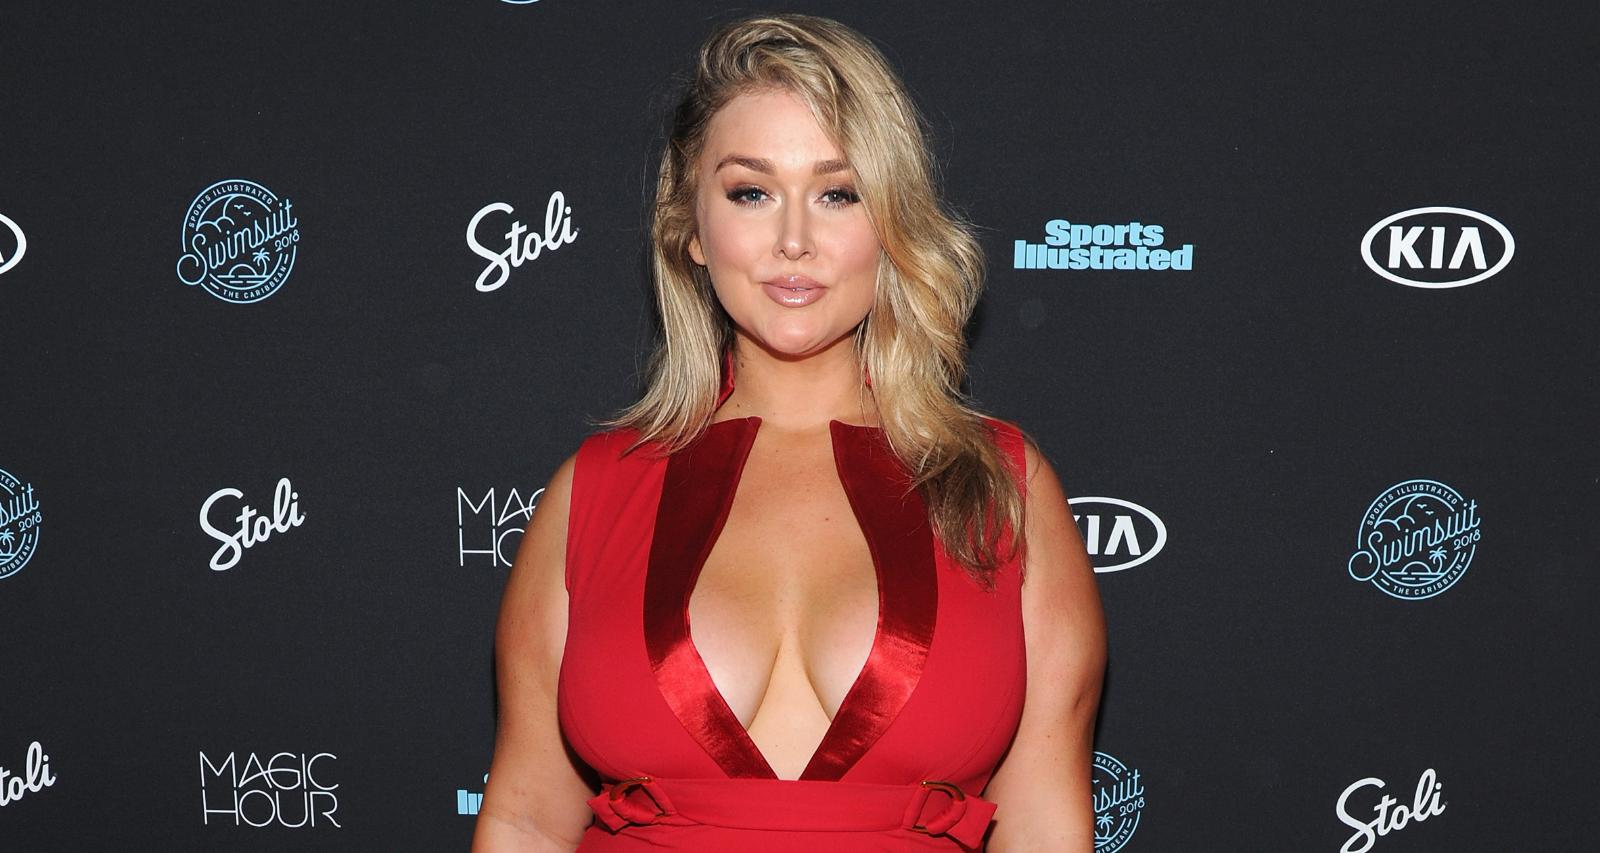 Who Is Hunter McGrady? 5 Facts about the Sports Illustrated Model